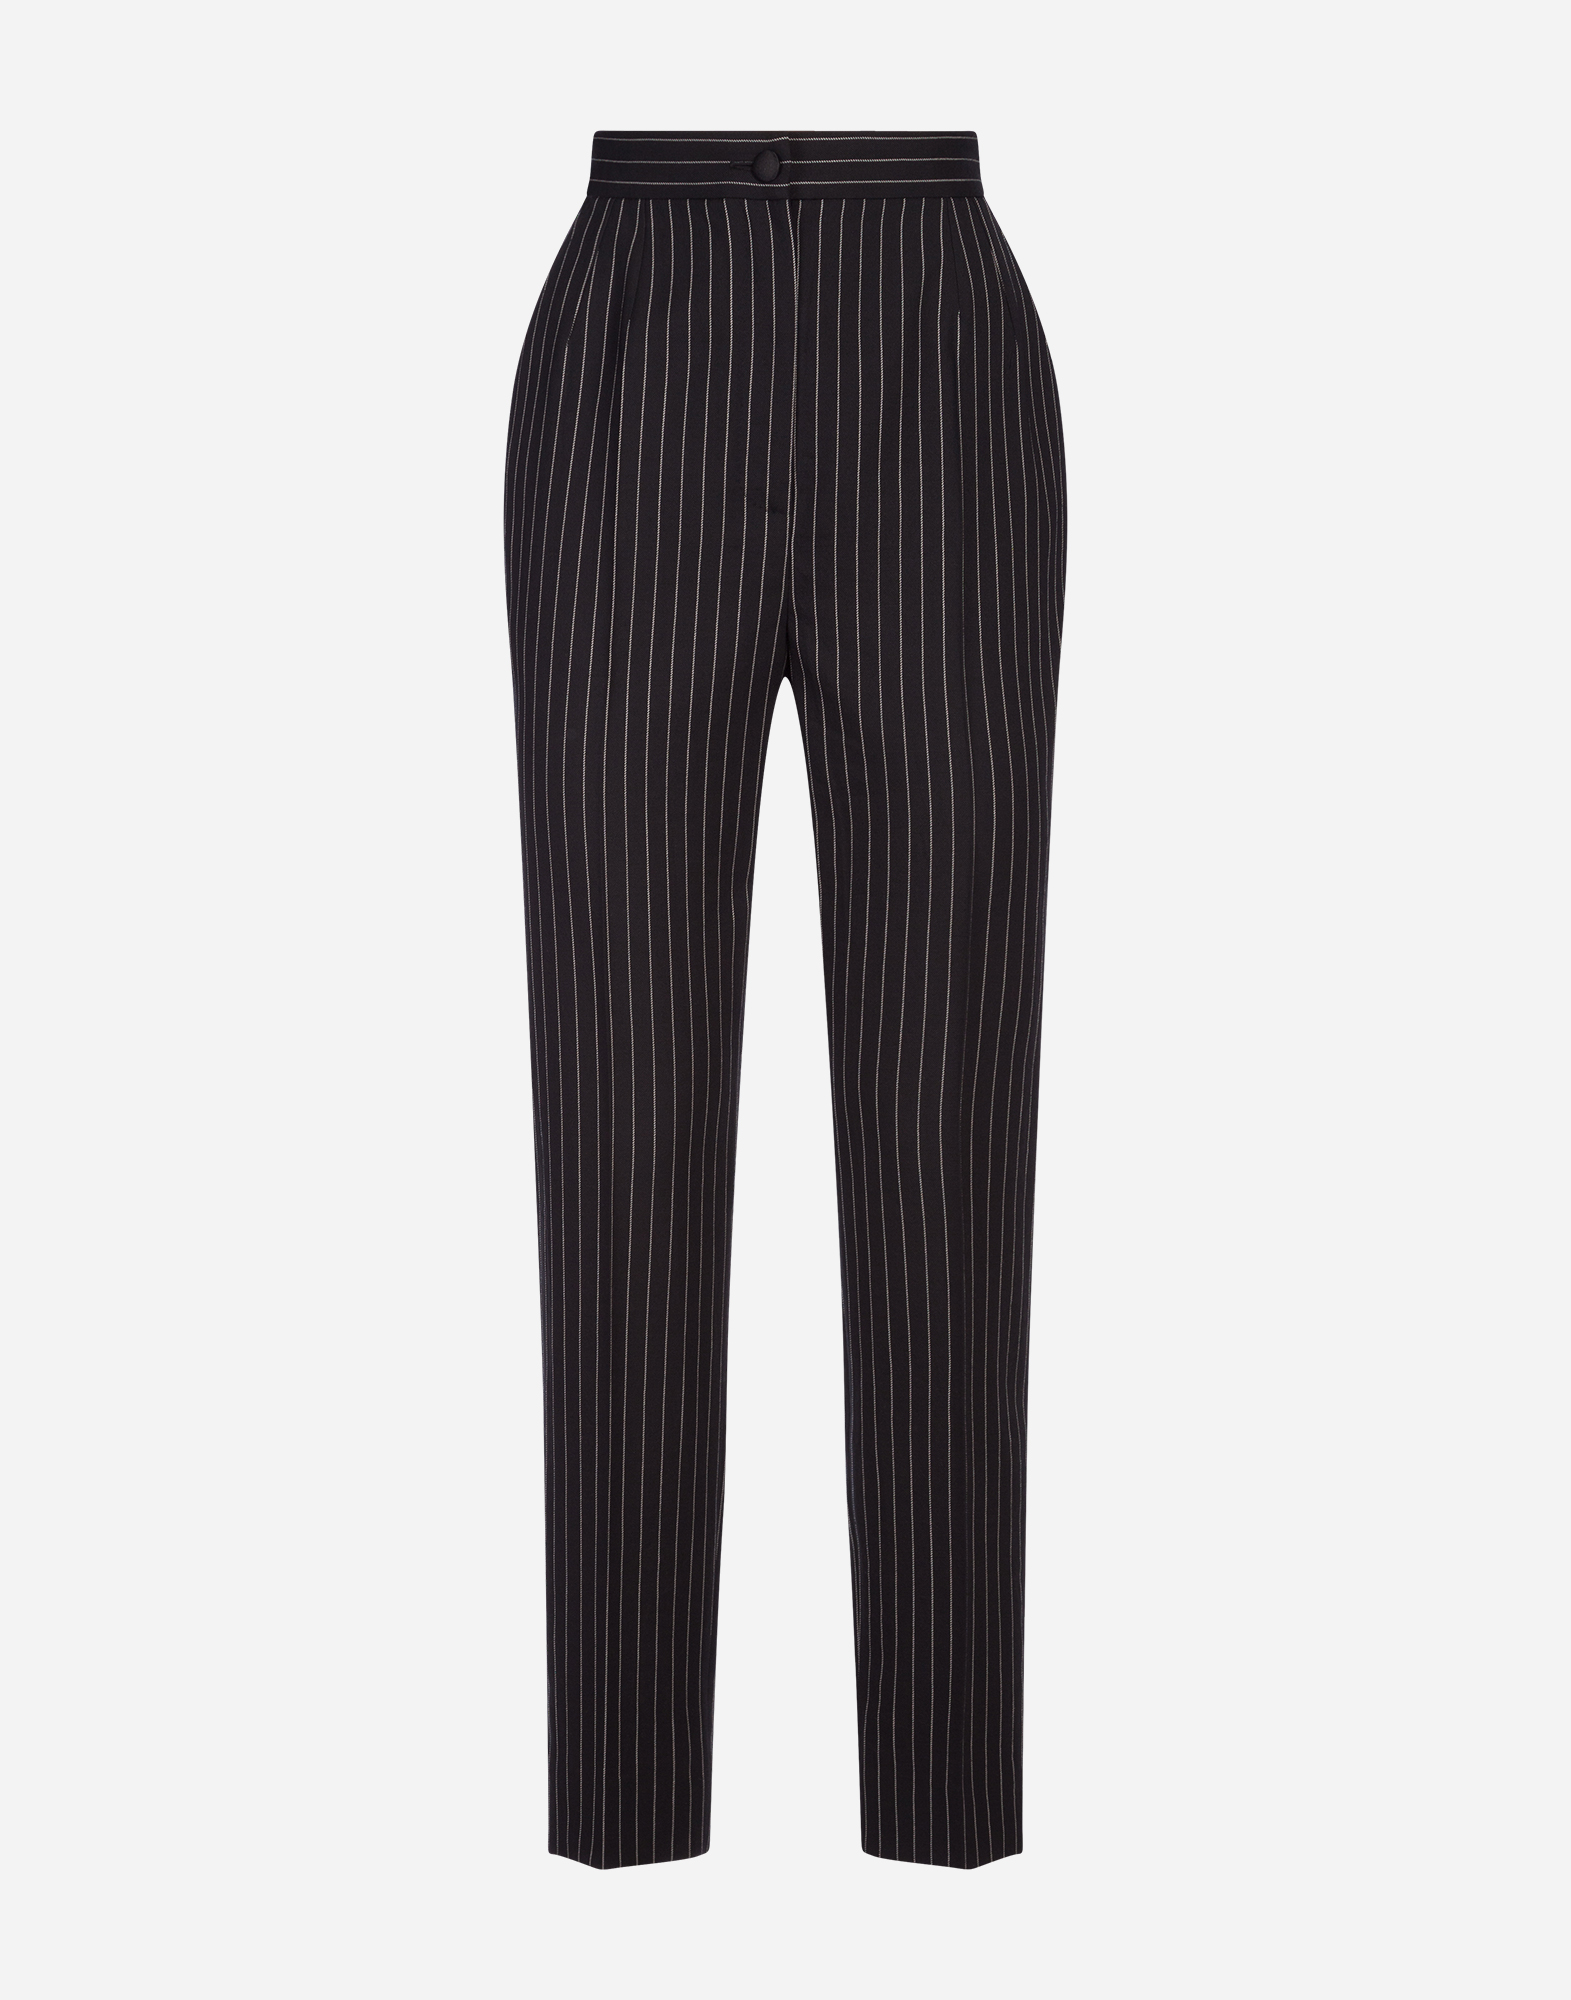 Dolce & Gabbana WOOL PANTS